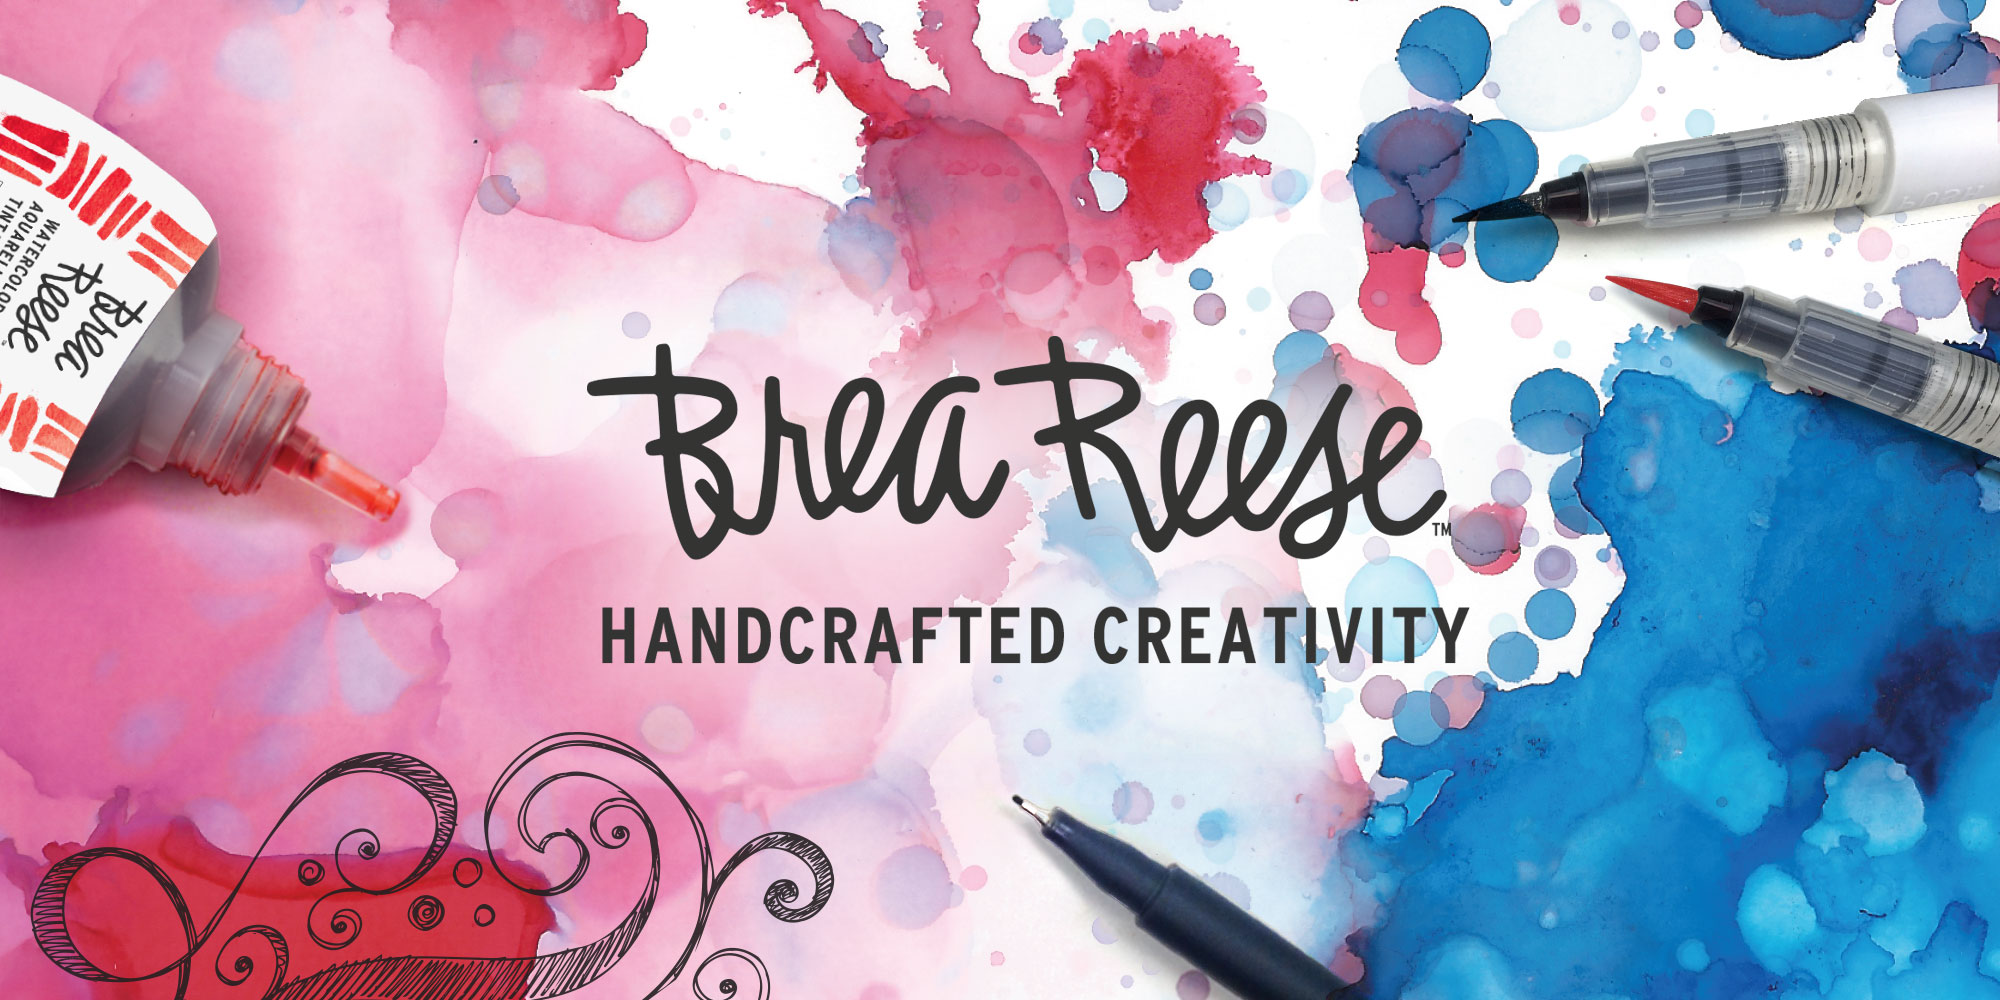 Brea Reese logo. A beautiful image of paint and pens and doodling with the Brea Reese logo on it.